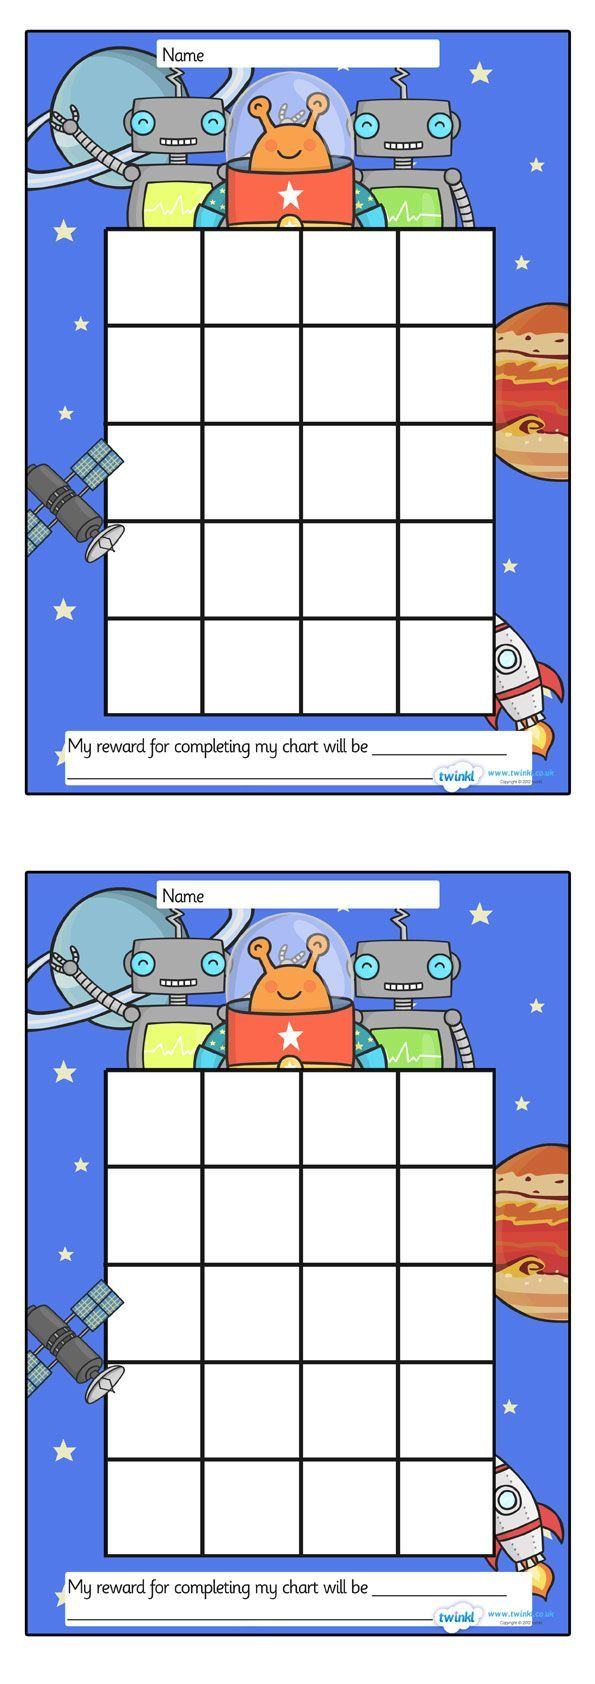 Twinkl Resources >> Space Sticker/Stamp Reward Chart  >> Classroom printables for Pre-School, Kindergarten, Elementary School and beyond! Rewards, Sticker Charts, Class Management, Behavior